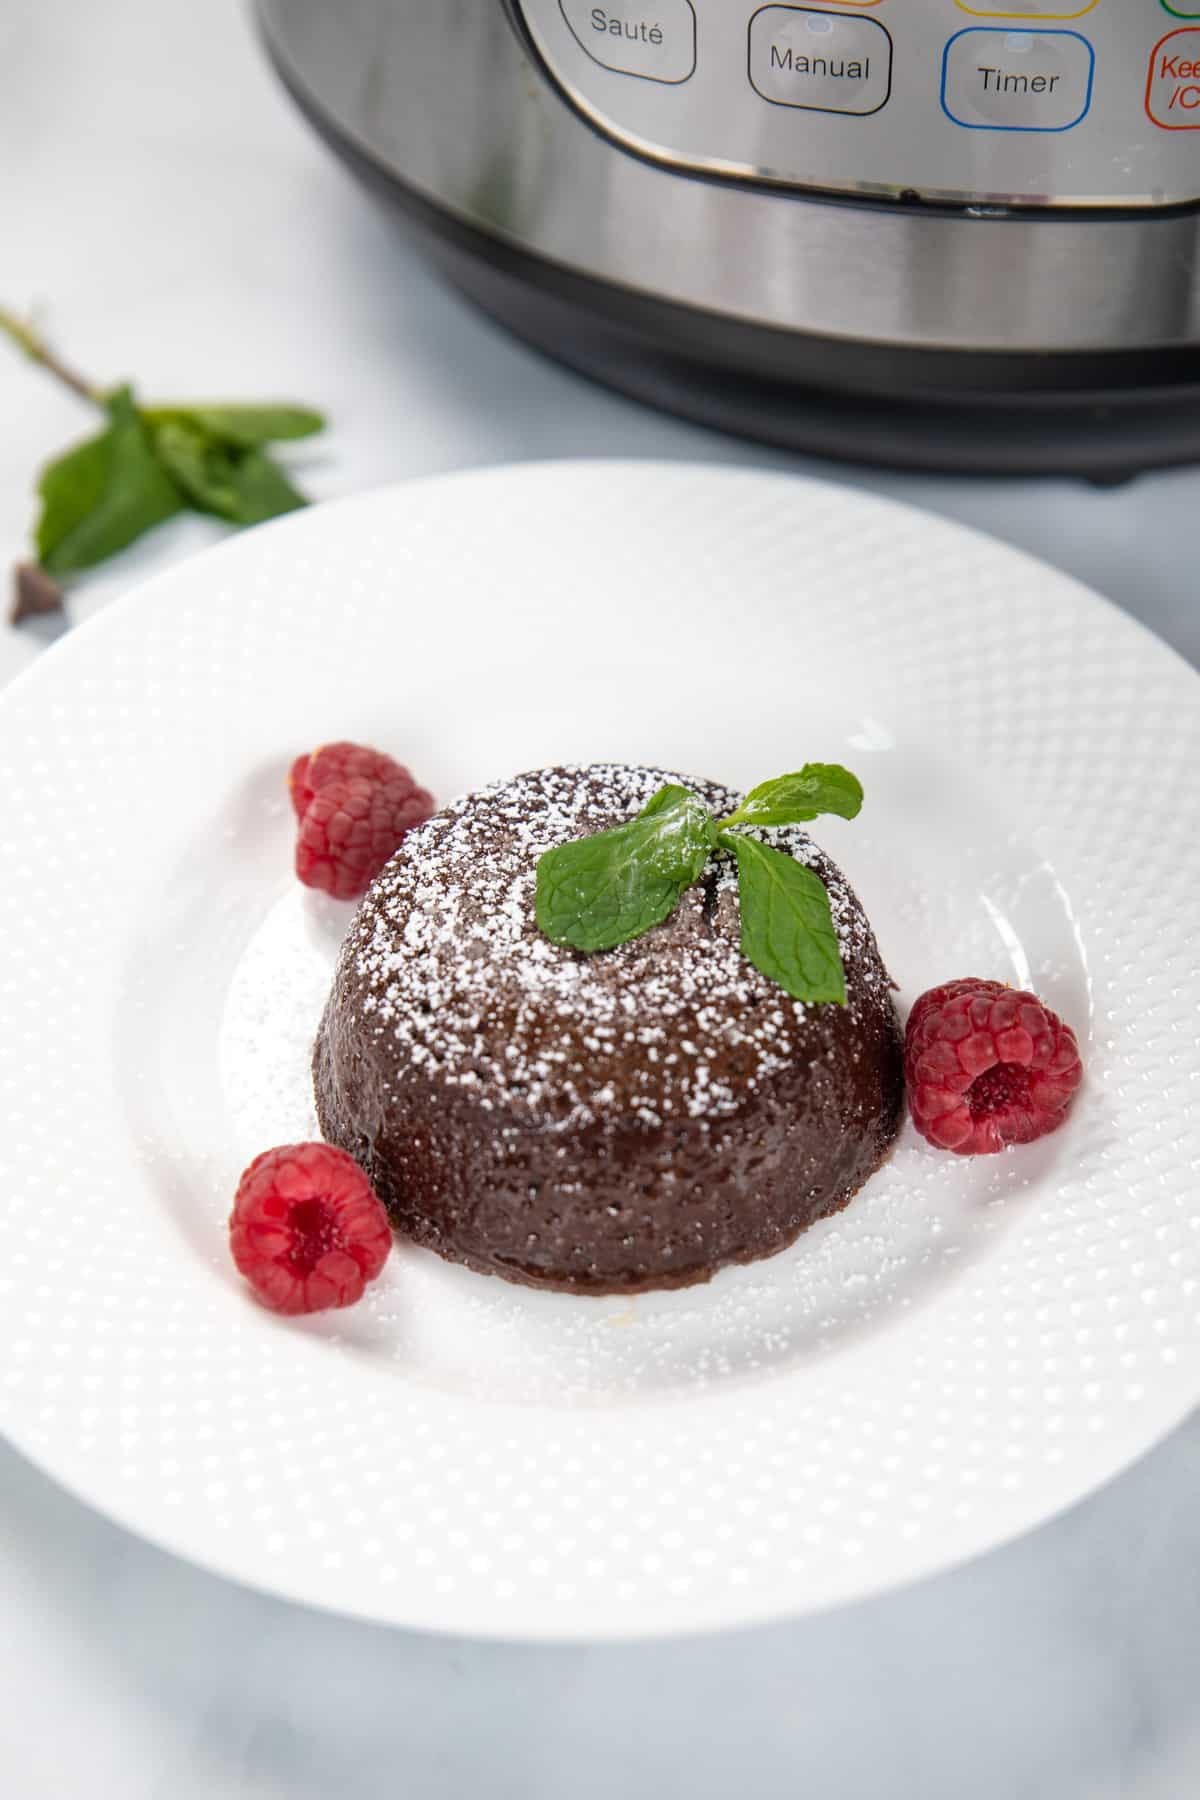 Lava cake on white plate topped with powdered sugar and raspberries.